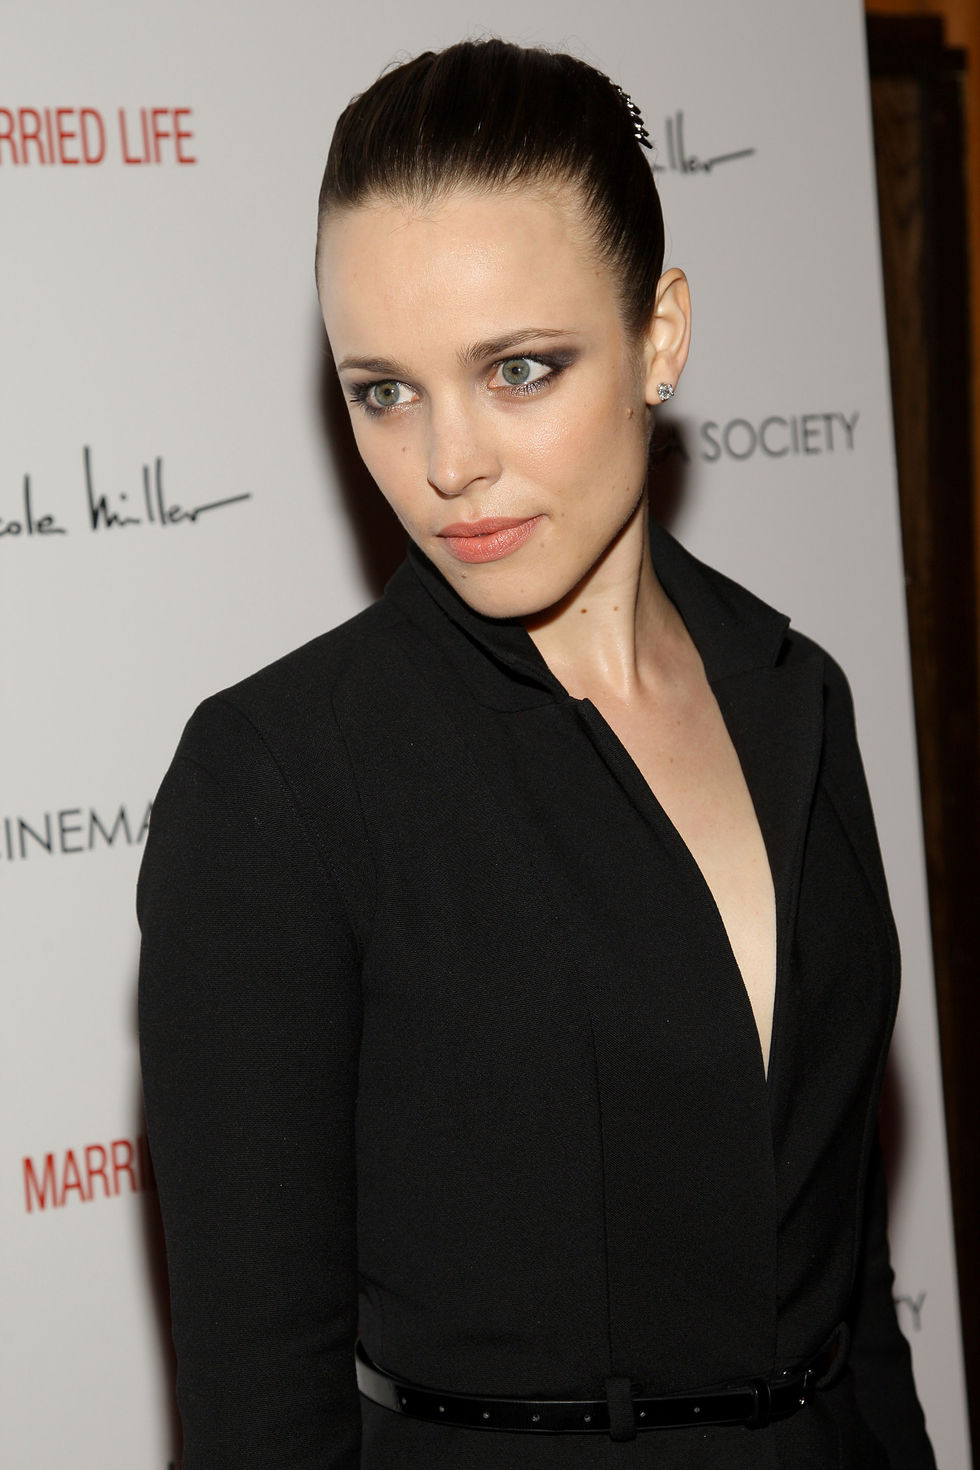 rachel-mcadams-married-life-premiere-in-new-york-city-01